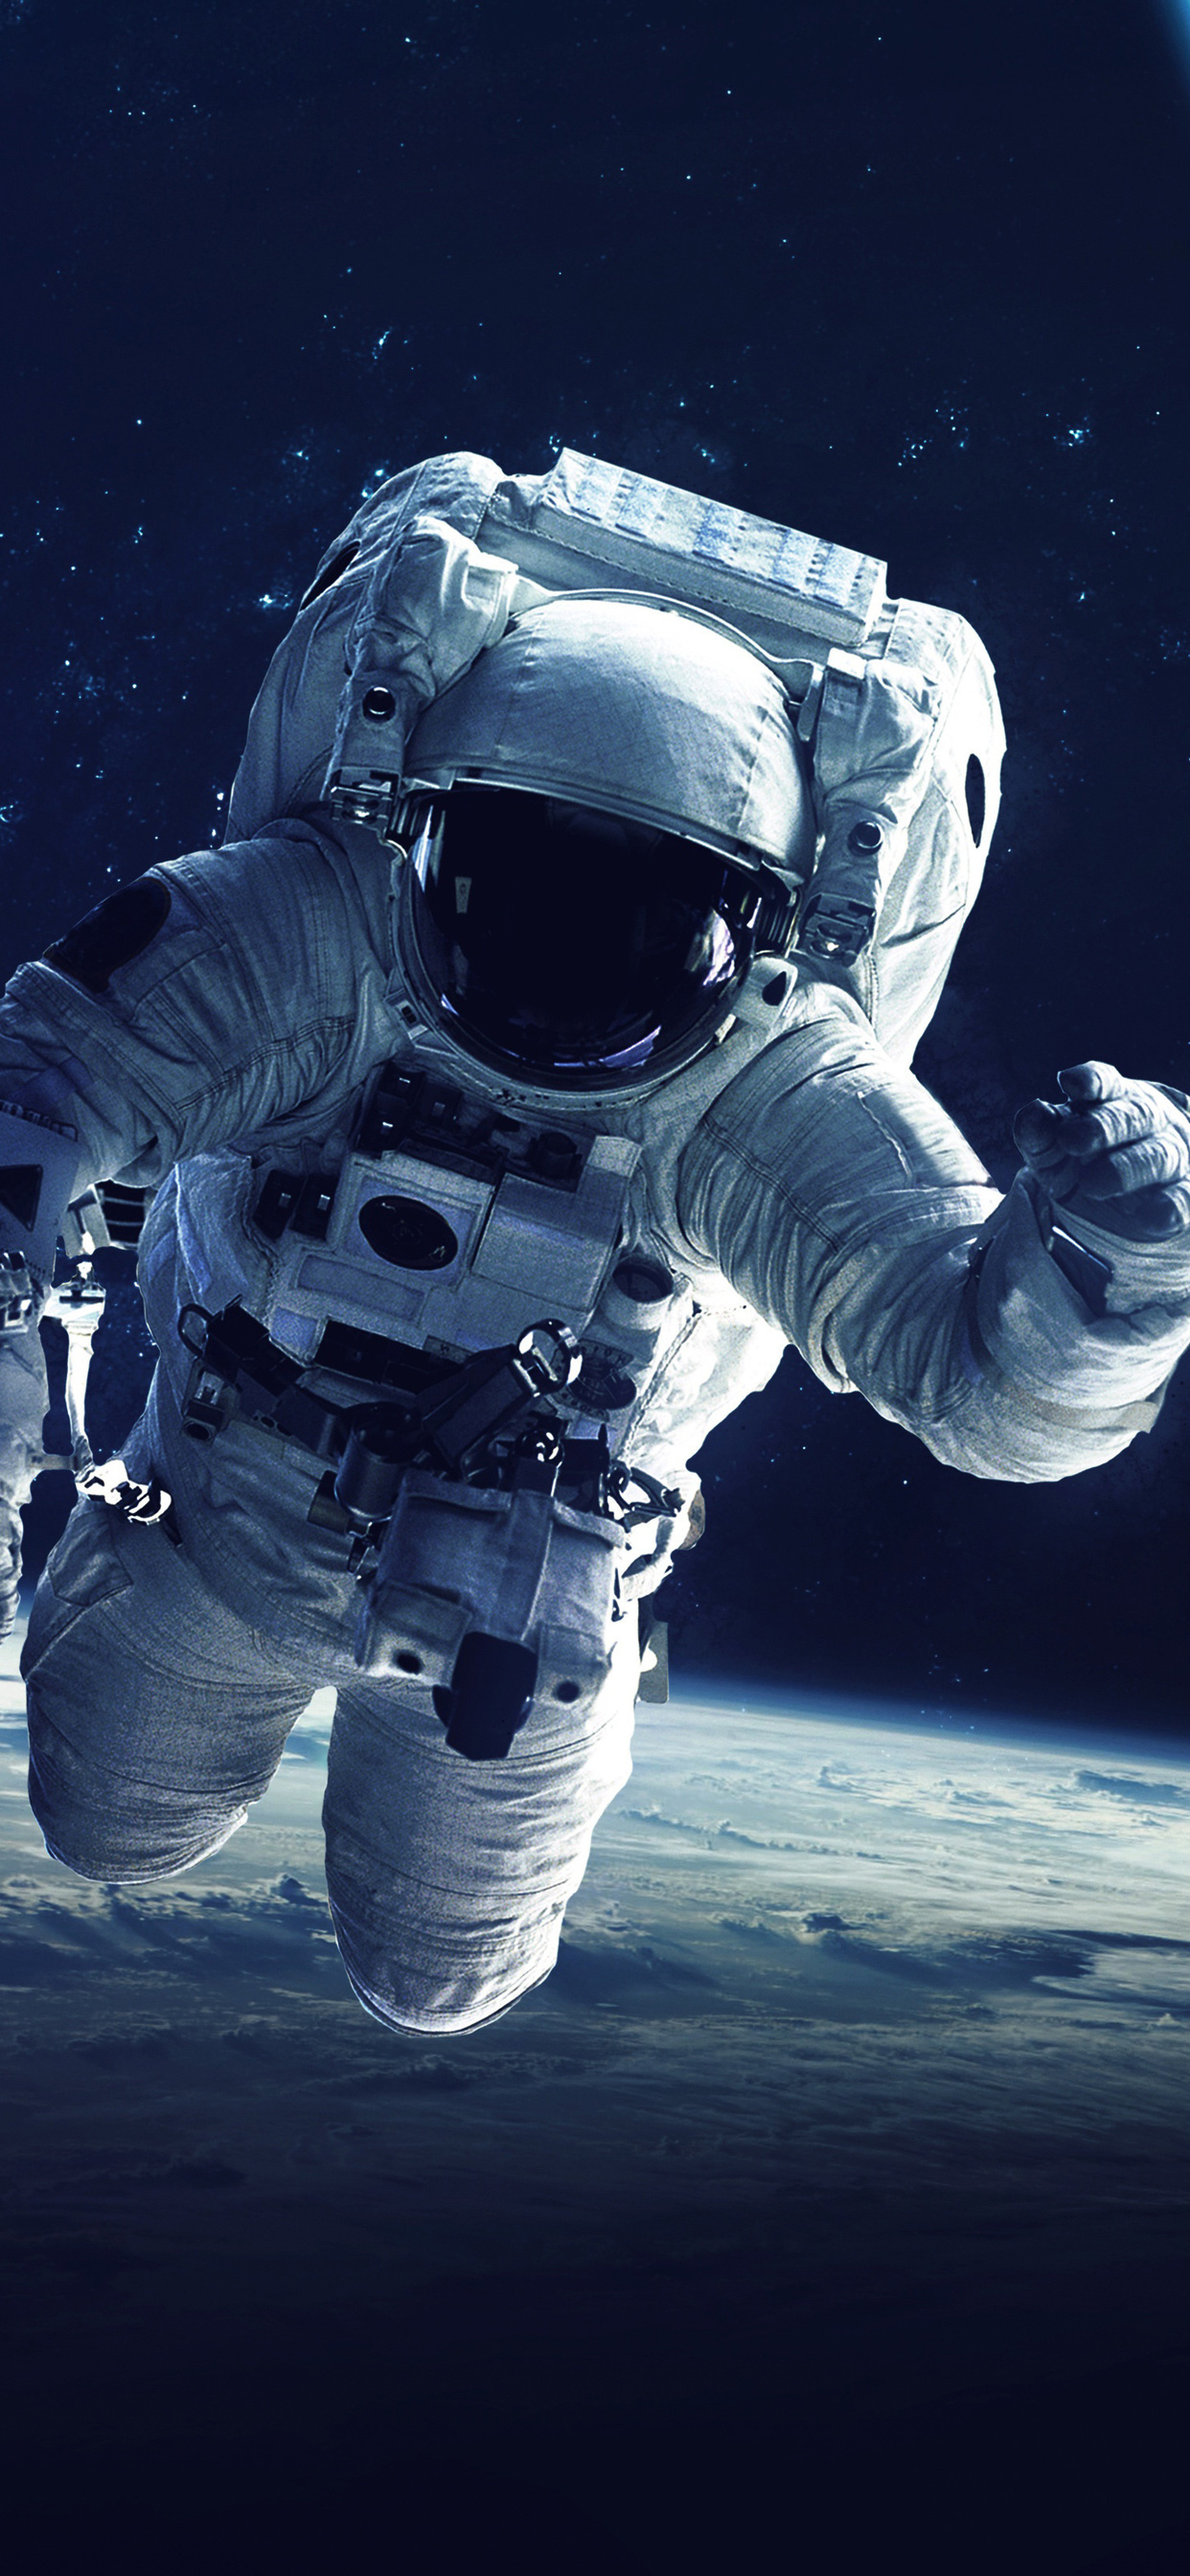 1242x2688 Astronaut 5k Iphone XS MAX HD 4k Wallpapers, Images